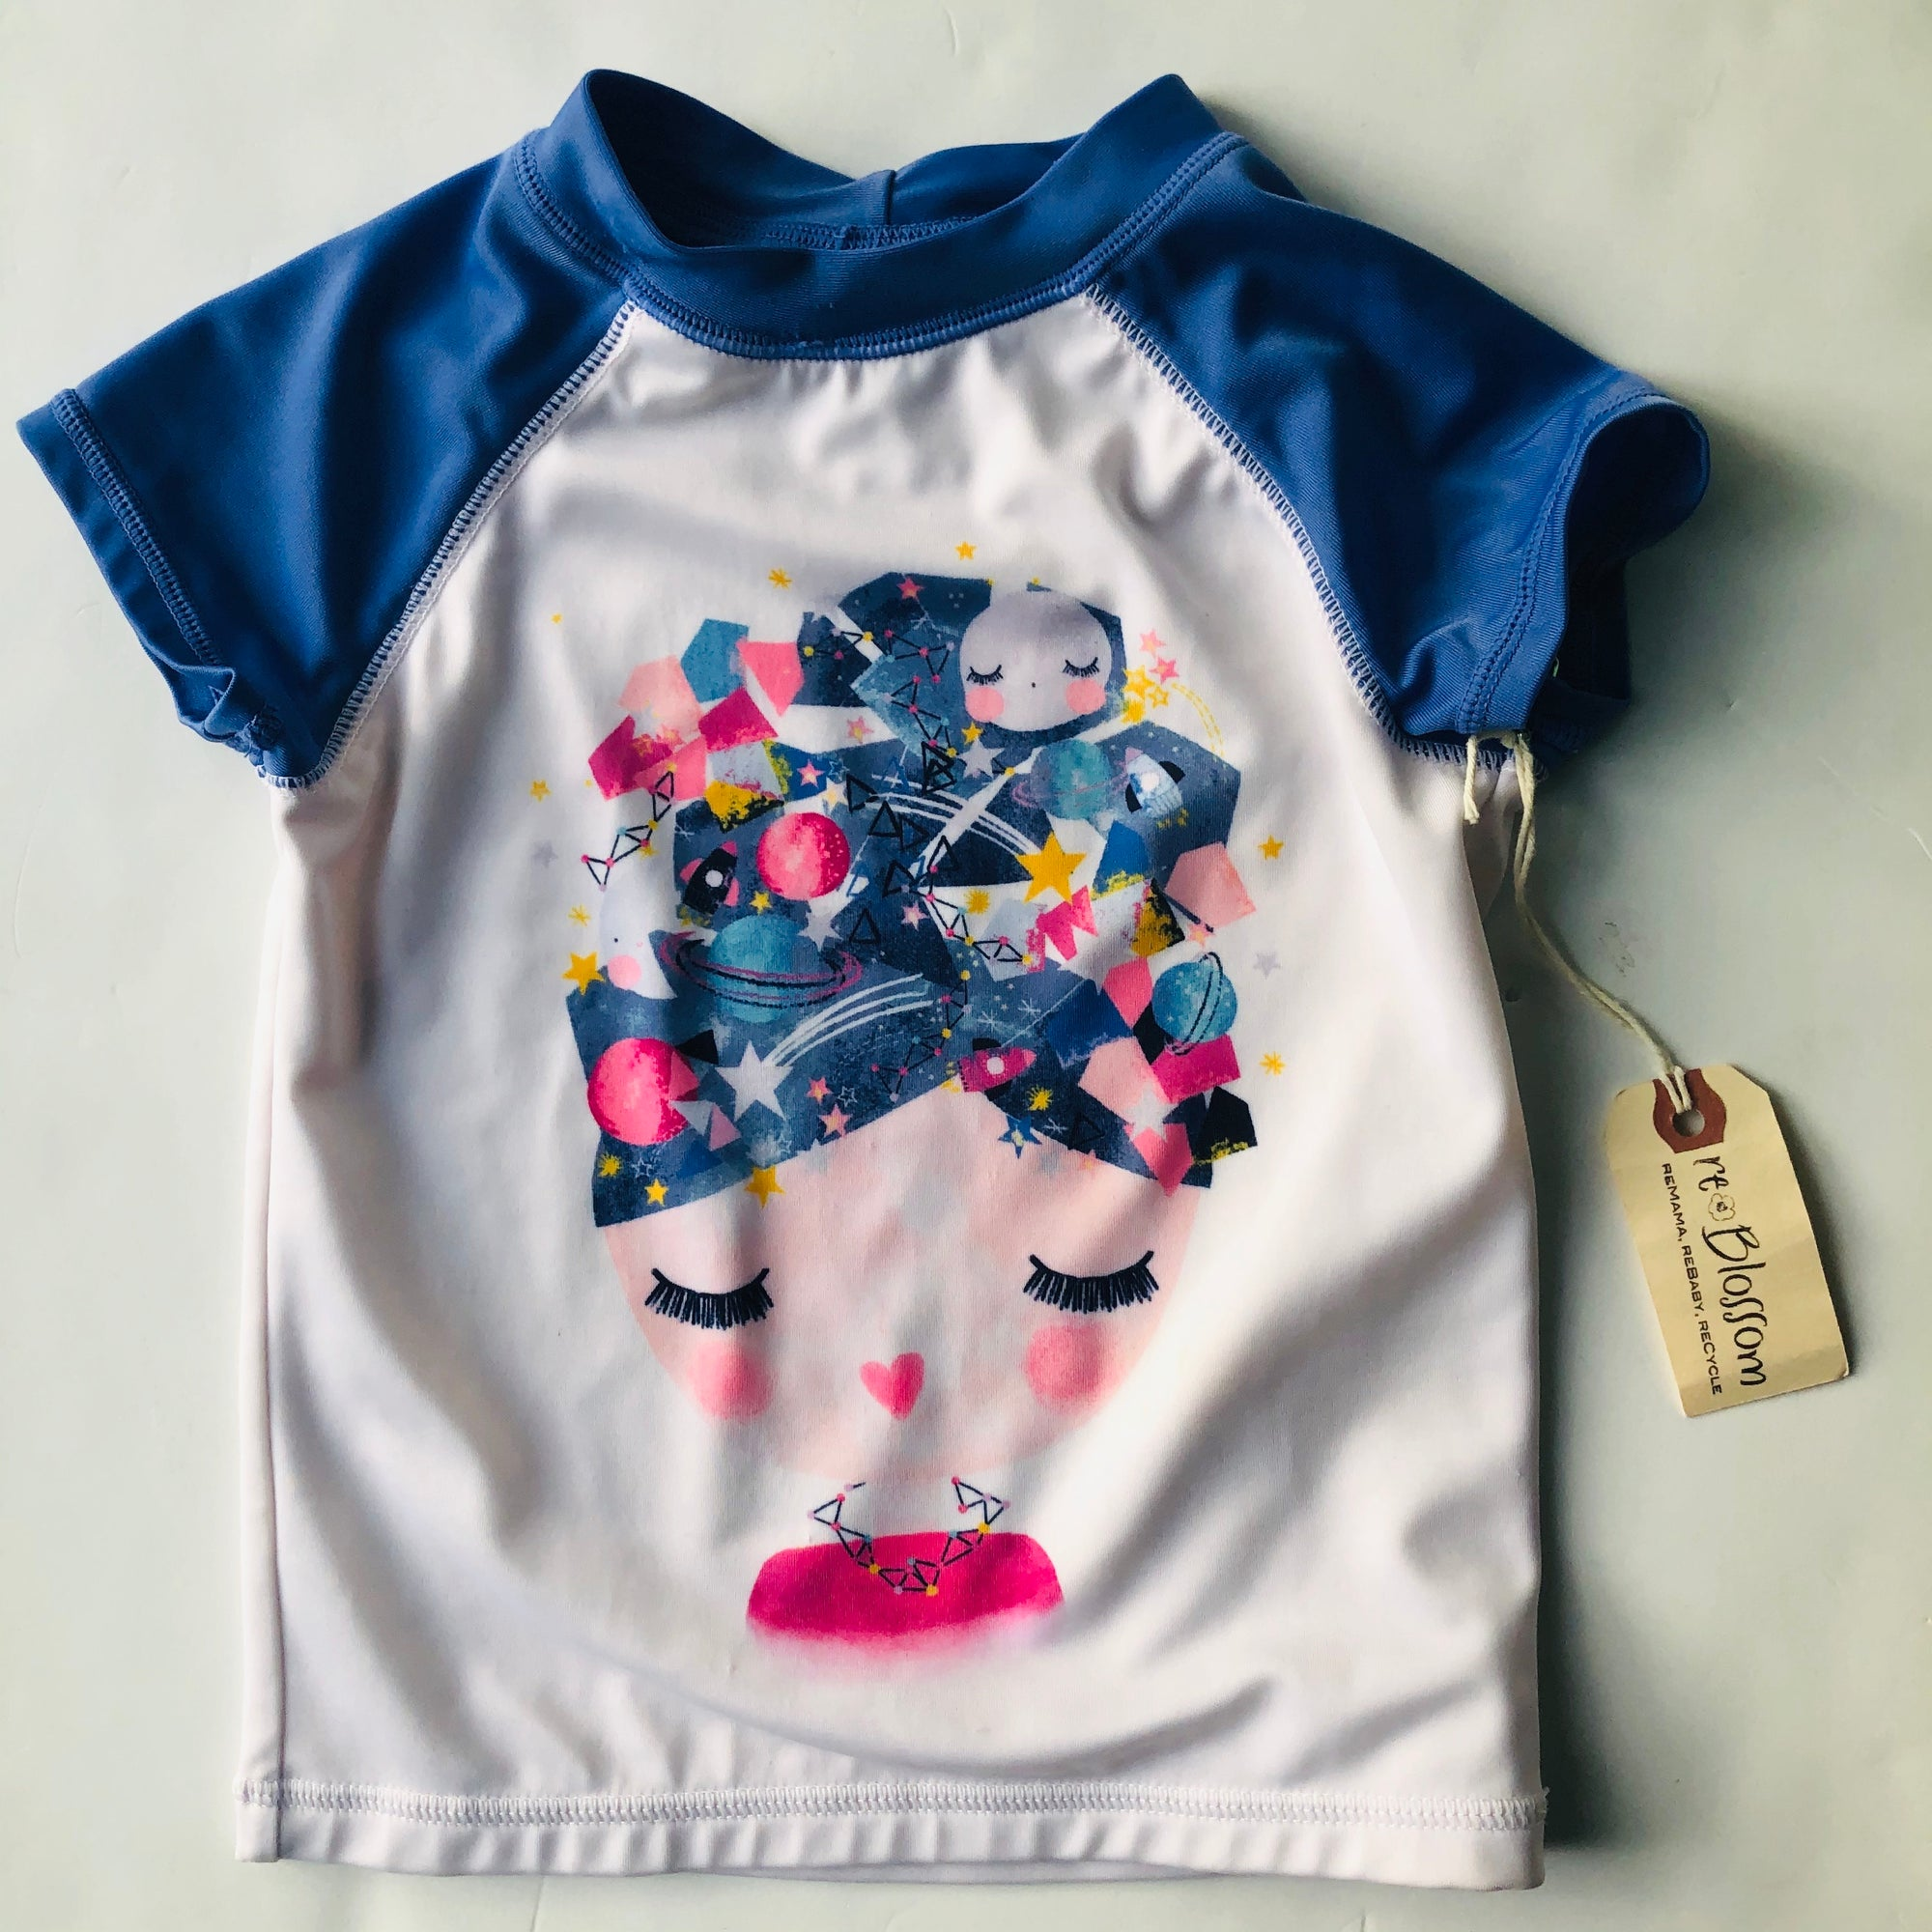 Resale 4T Gymboree Space Girl Rash Guard